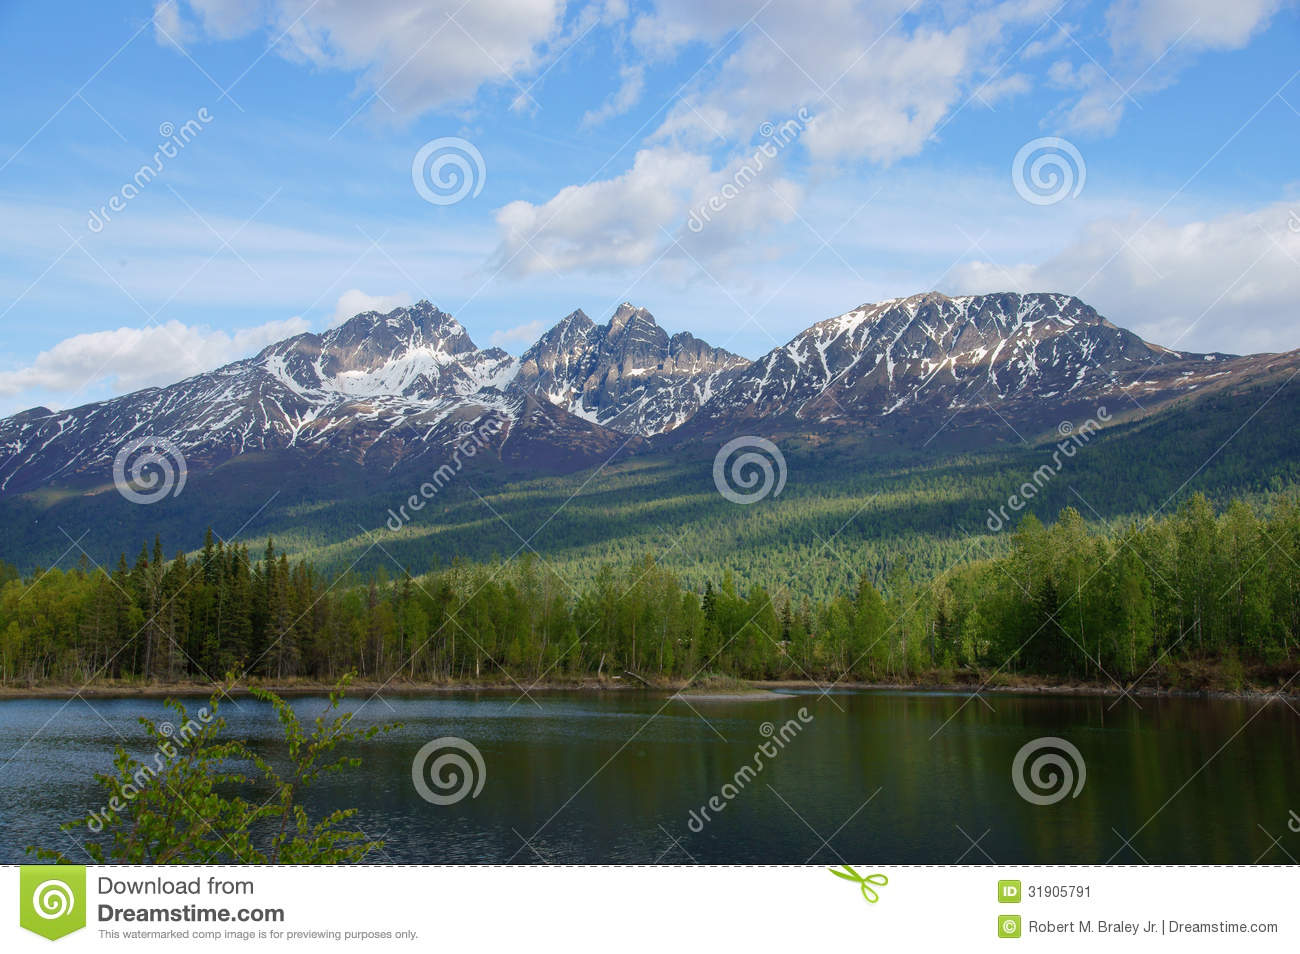 Download Alaska Mountains And Lake, Palmer Hays Flats Stock Image - Image of confluence, quiet: 31905791